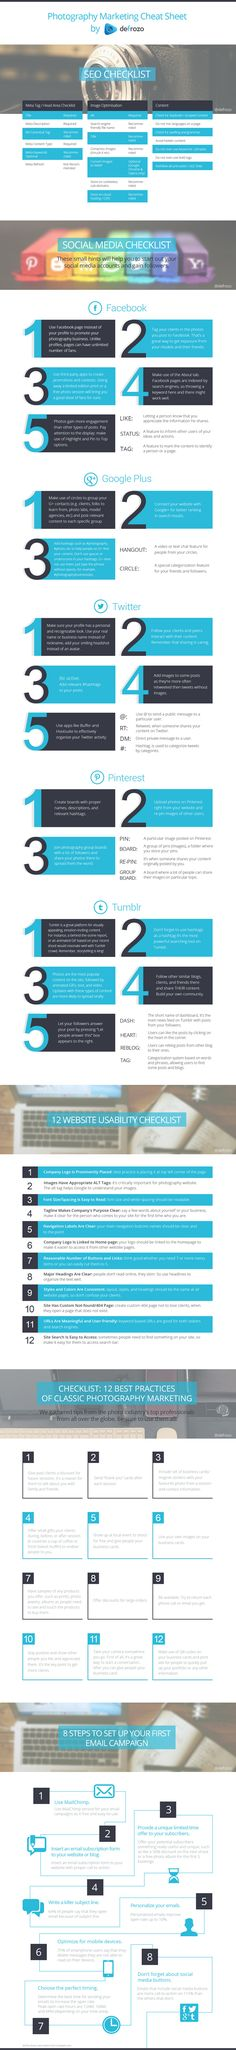 20 Superb Infographics and Cheat Sheets to Help You Grow Your Photography Business Fast